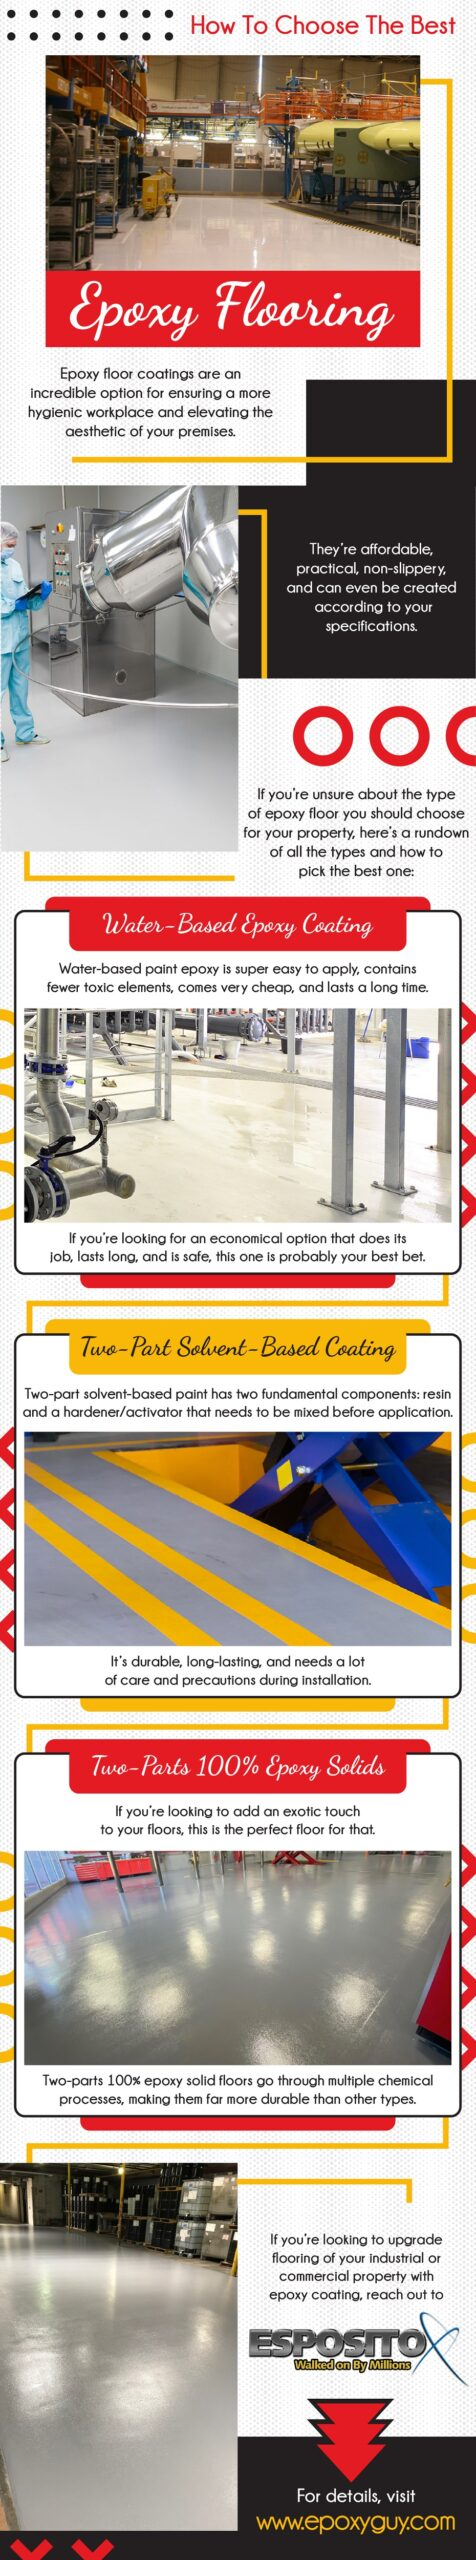 How to Choose The Best Epoxy Flooring